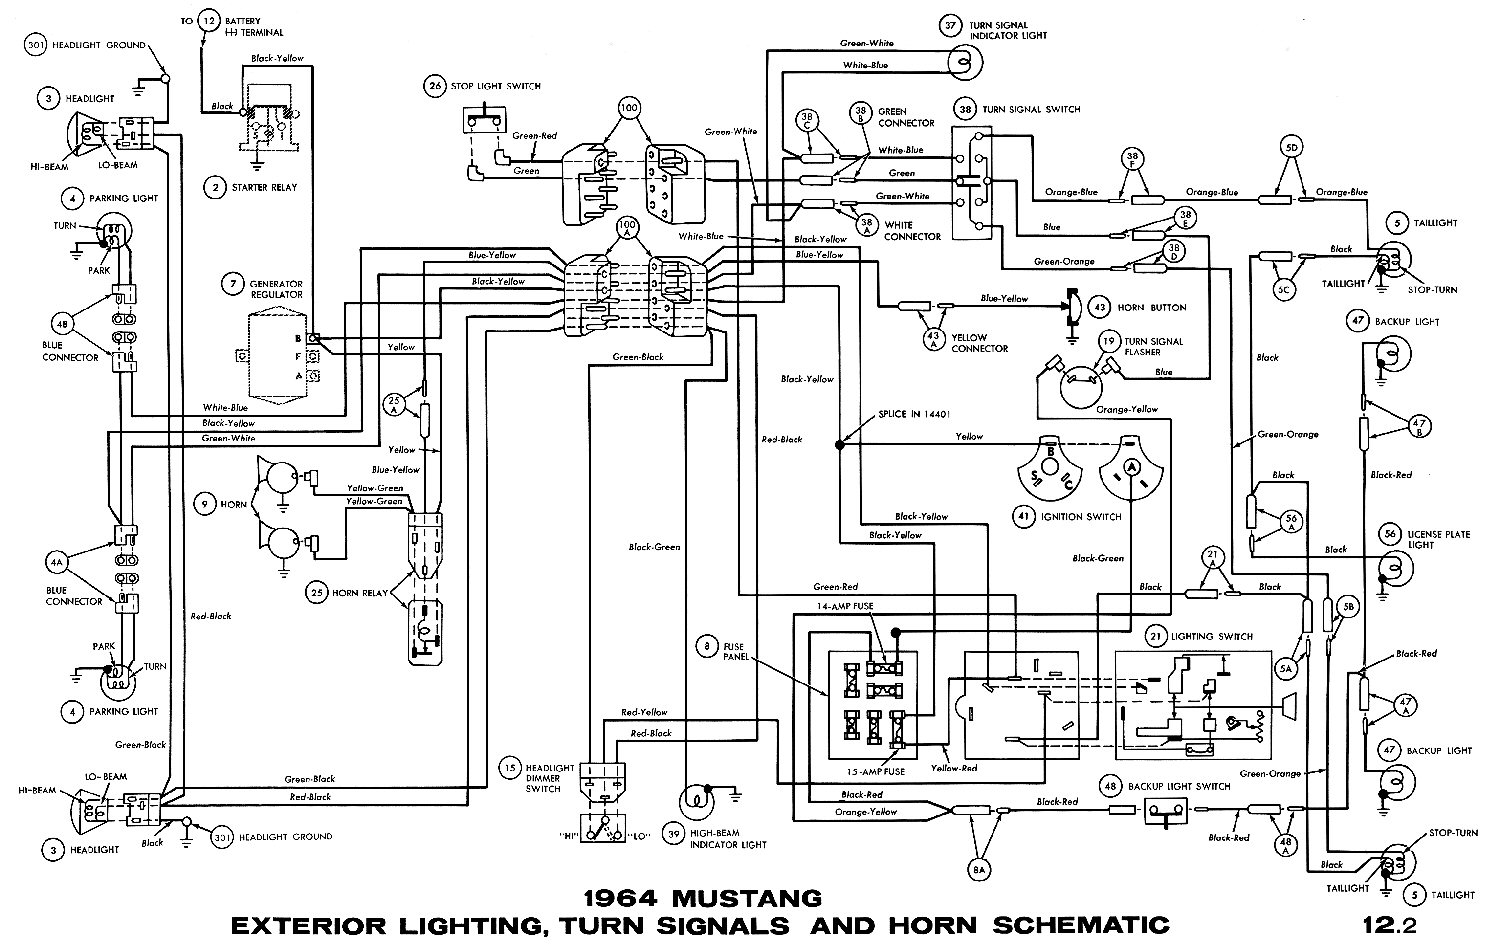 1964 Ford Solenoid Wiring Trusted Diagram How To Wire A Starter Mustang Diagrams Average Joe Restoration Rh Averagejoerestoration Com 1965